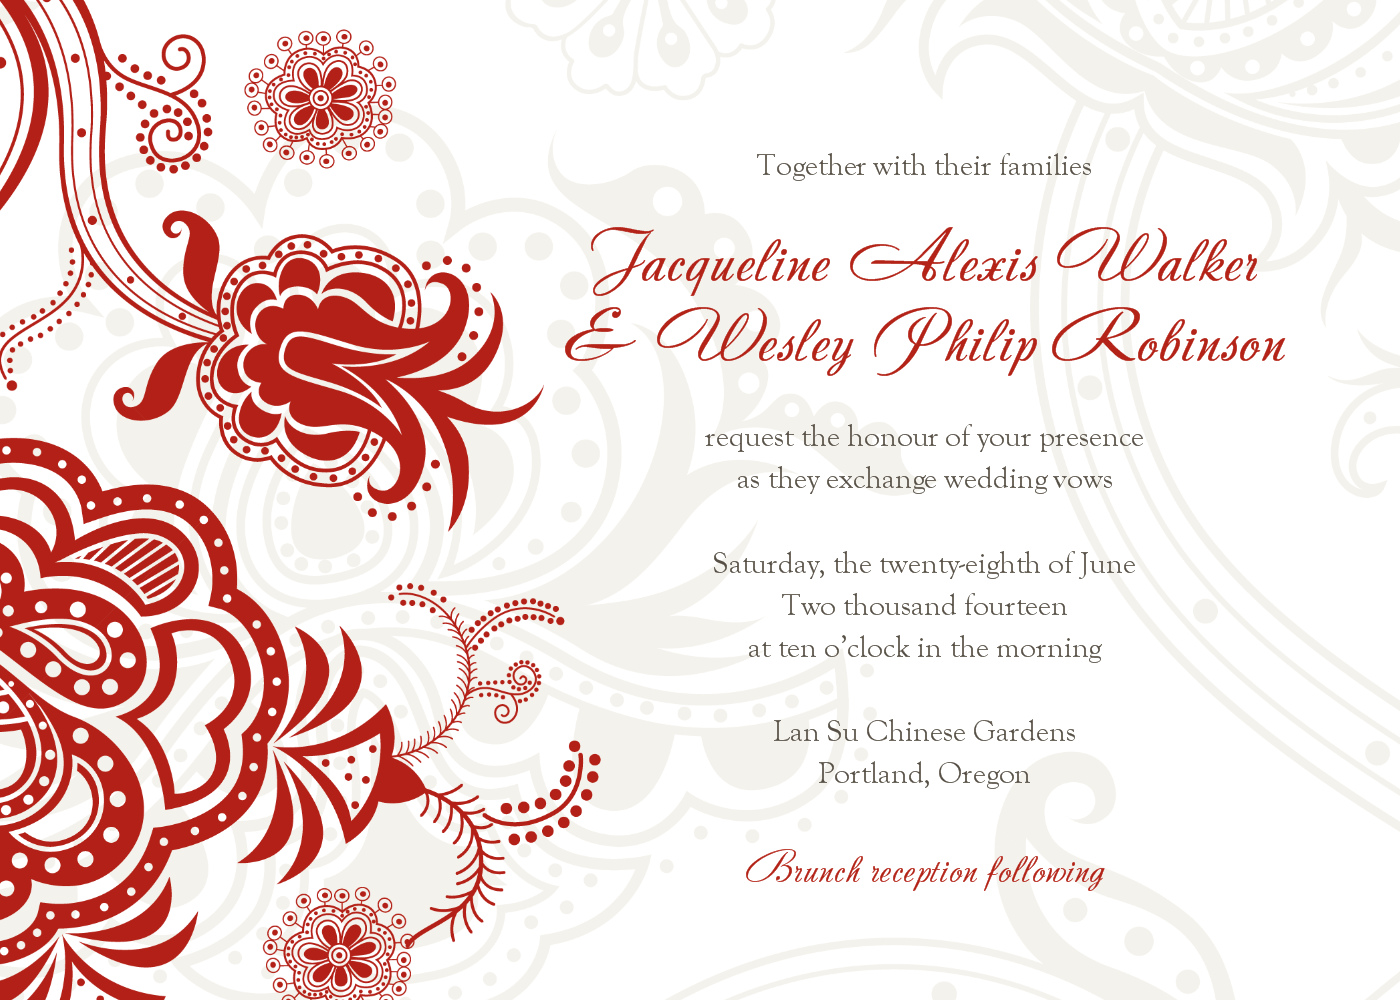 1000 images about wedding invitations – Traditional Wedding Invitation Cards Designs